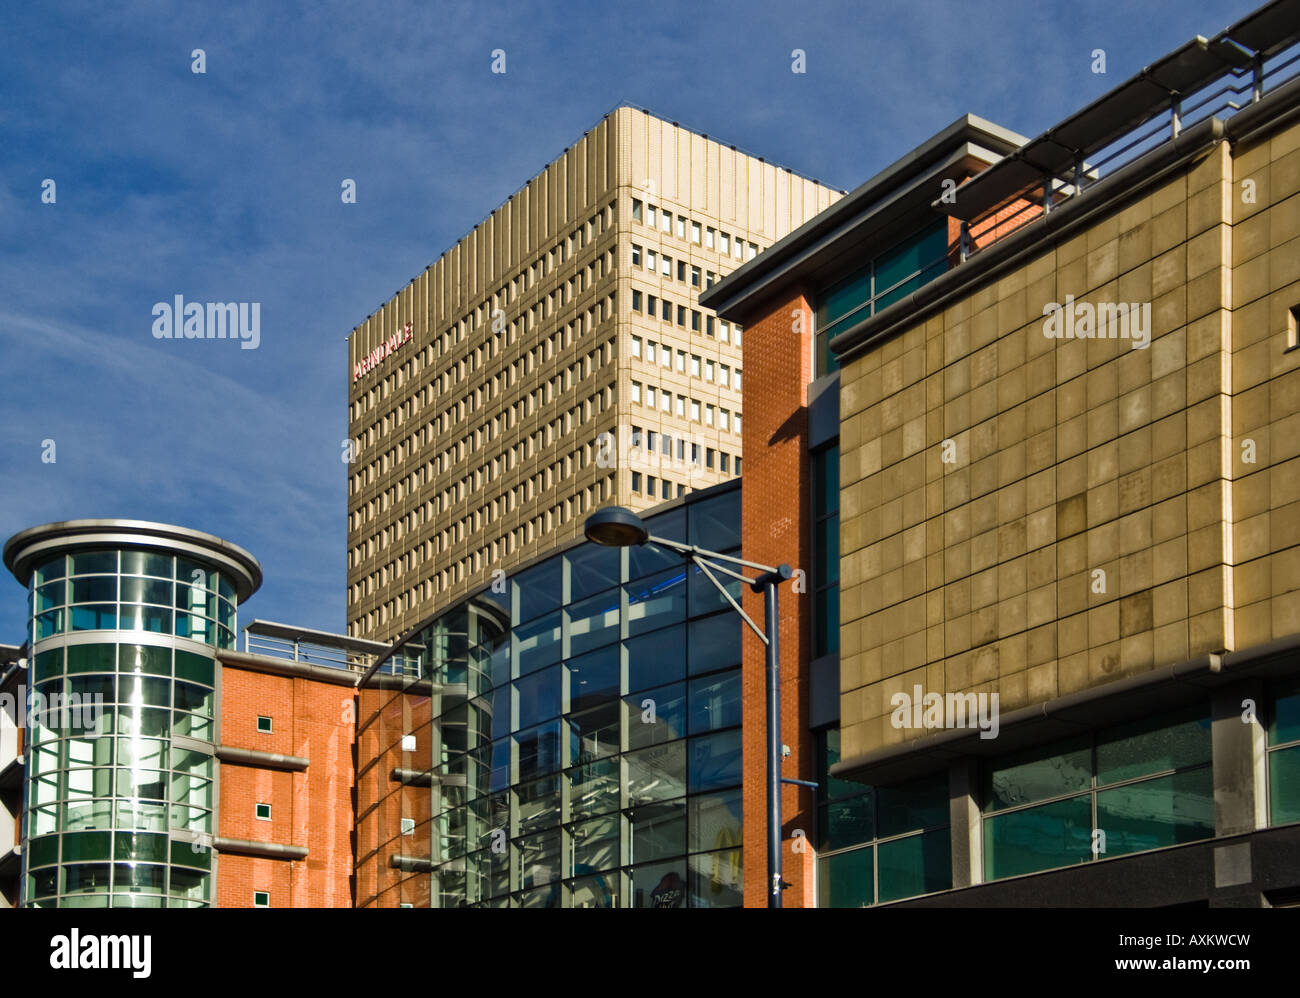 Manchester Arndale Centre - Stock Image